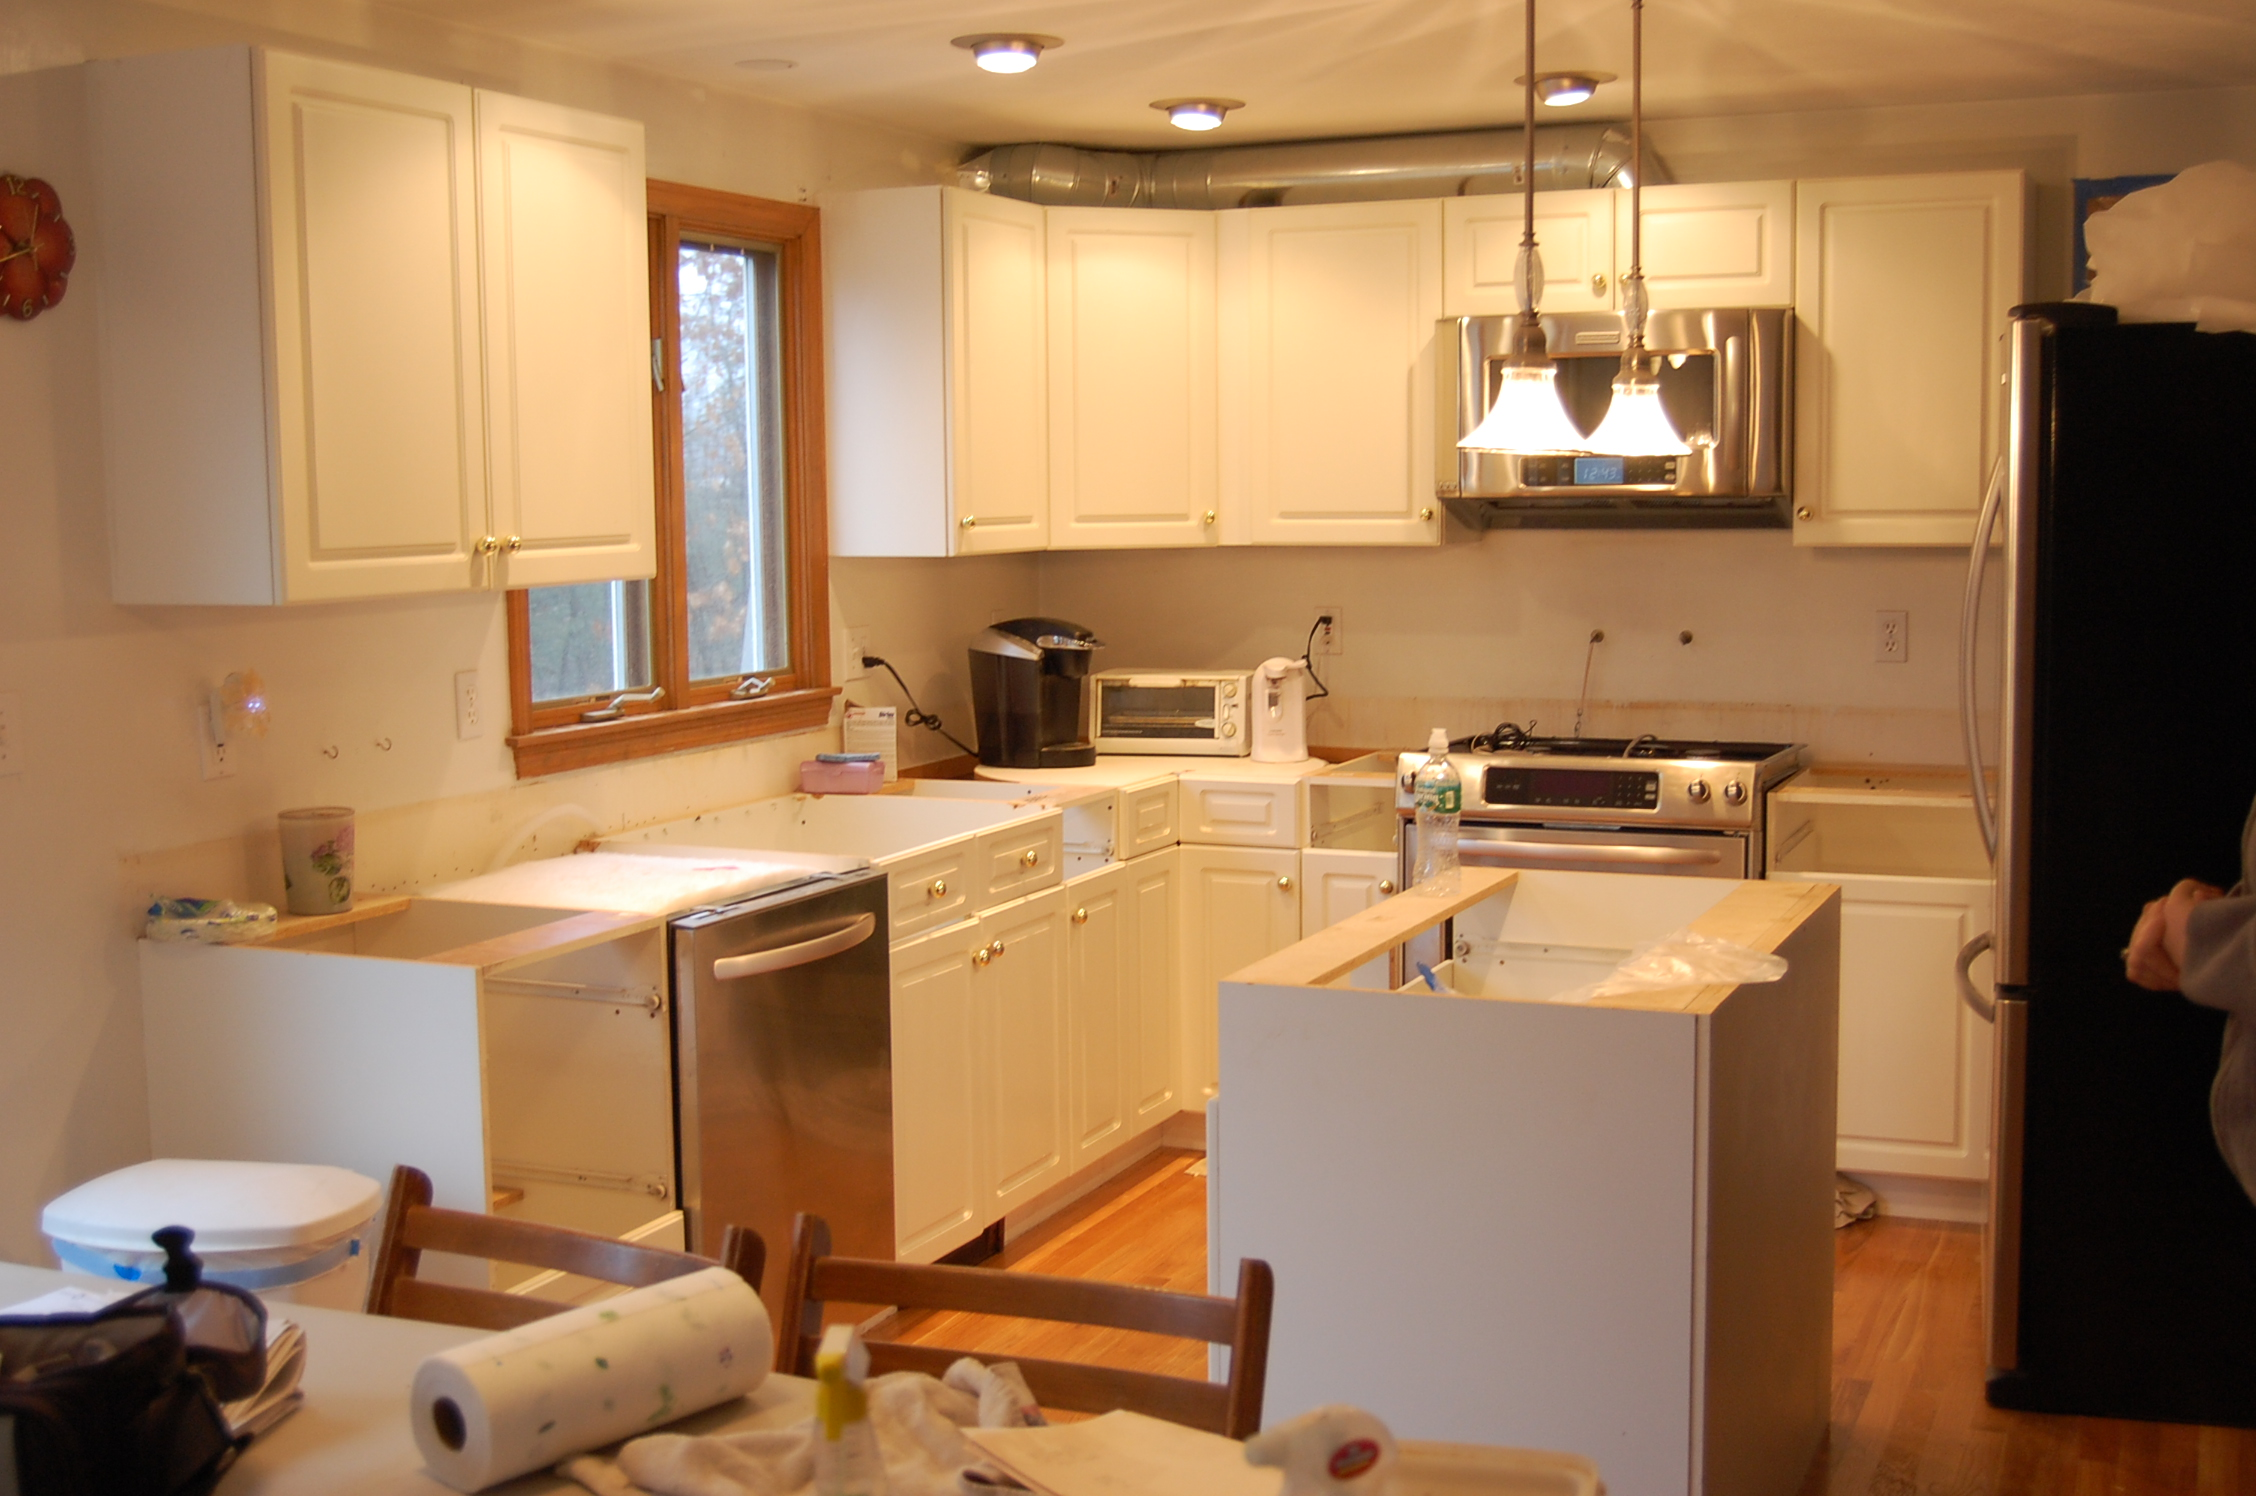 A Classic KKitchen photo of a kitchen before refacing.